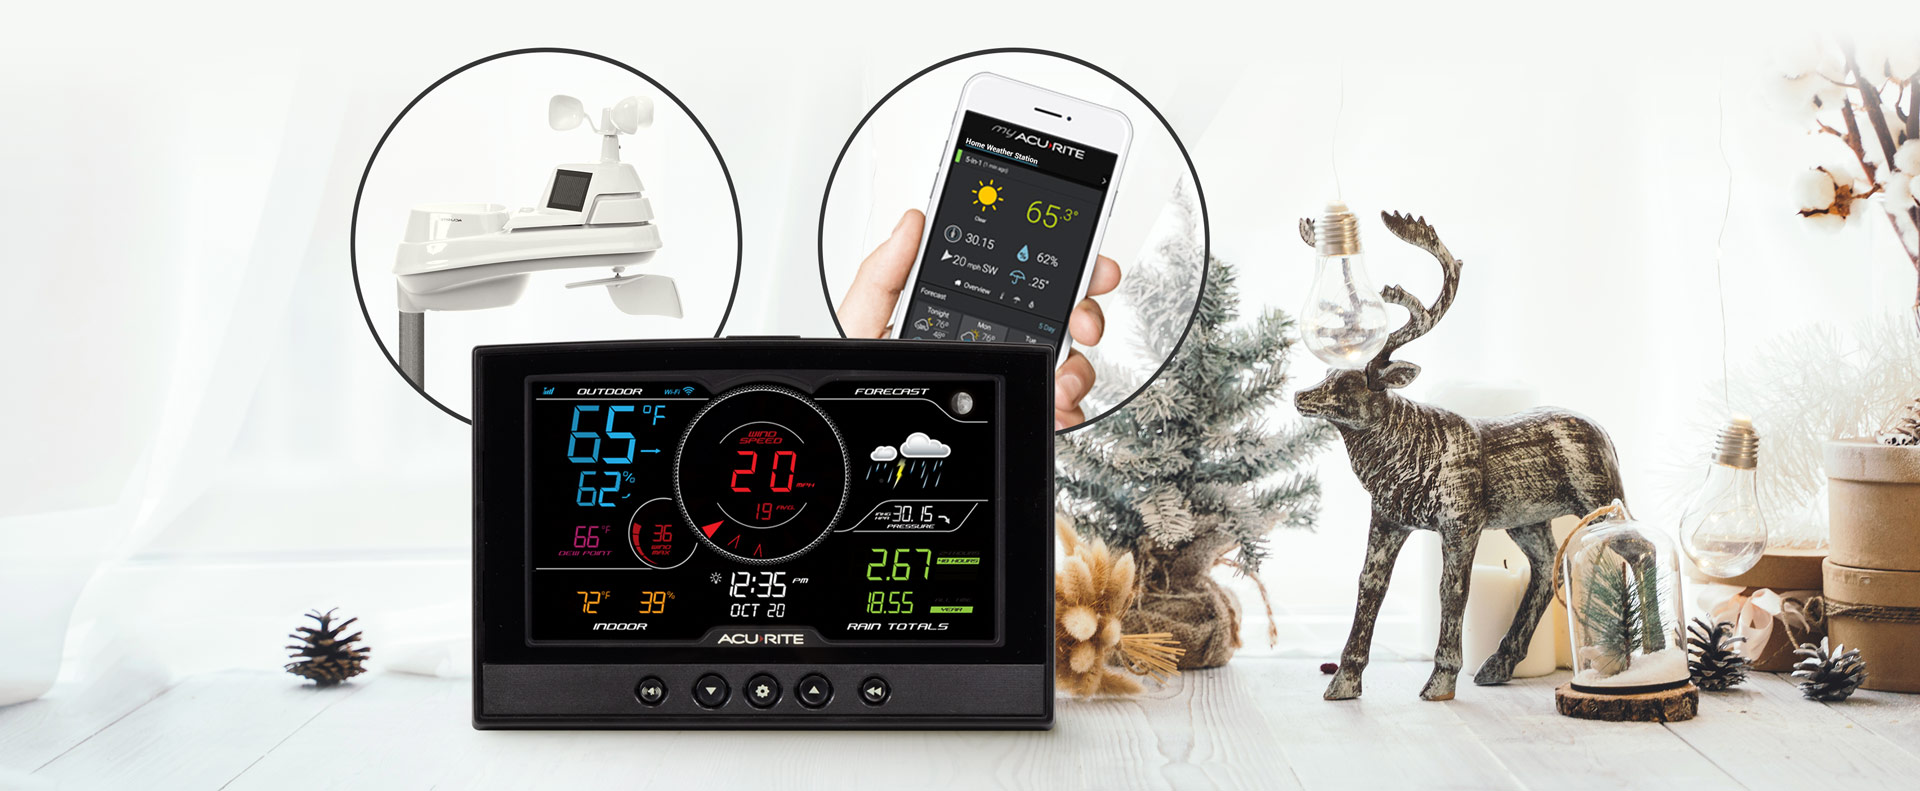 AcuRite Iris (5-in-1) Weather Station with Direct-to-Wi-Fi Display